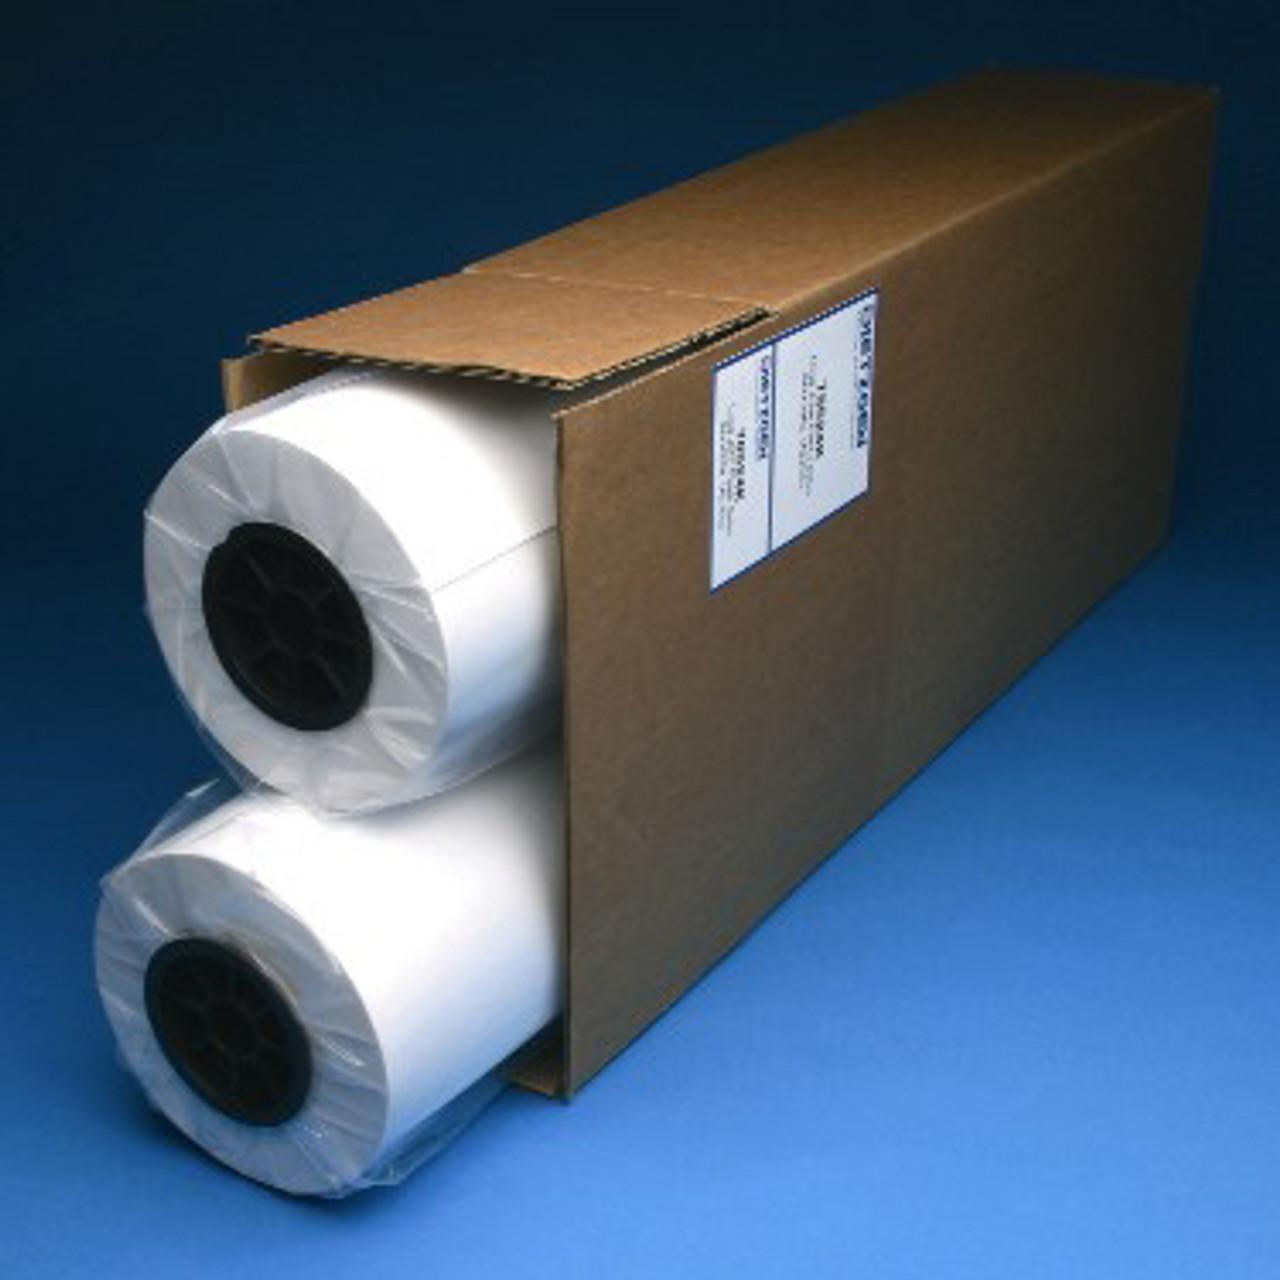 2 core 1 roll//carton 130 g//m2 36 x 100 35 lb. HP Heavyweight Coated Paper 6.6 mil